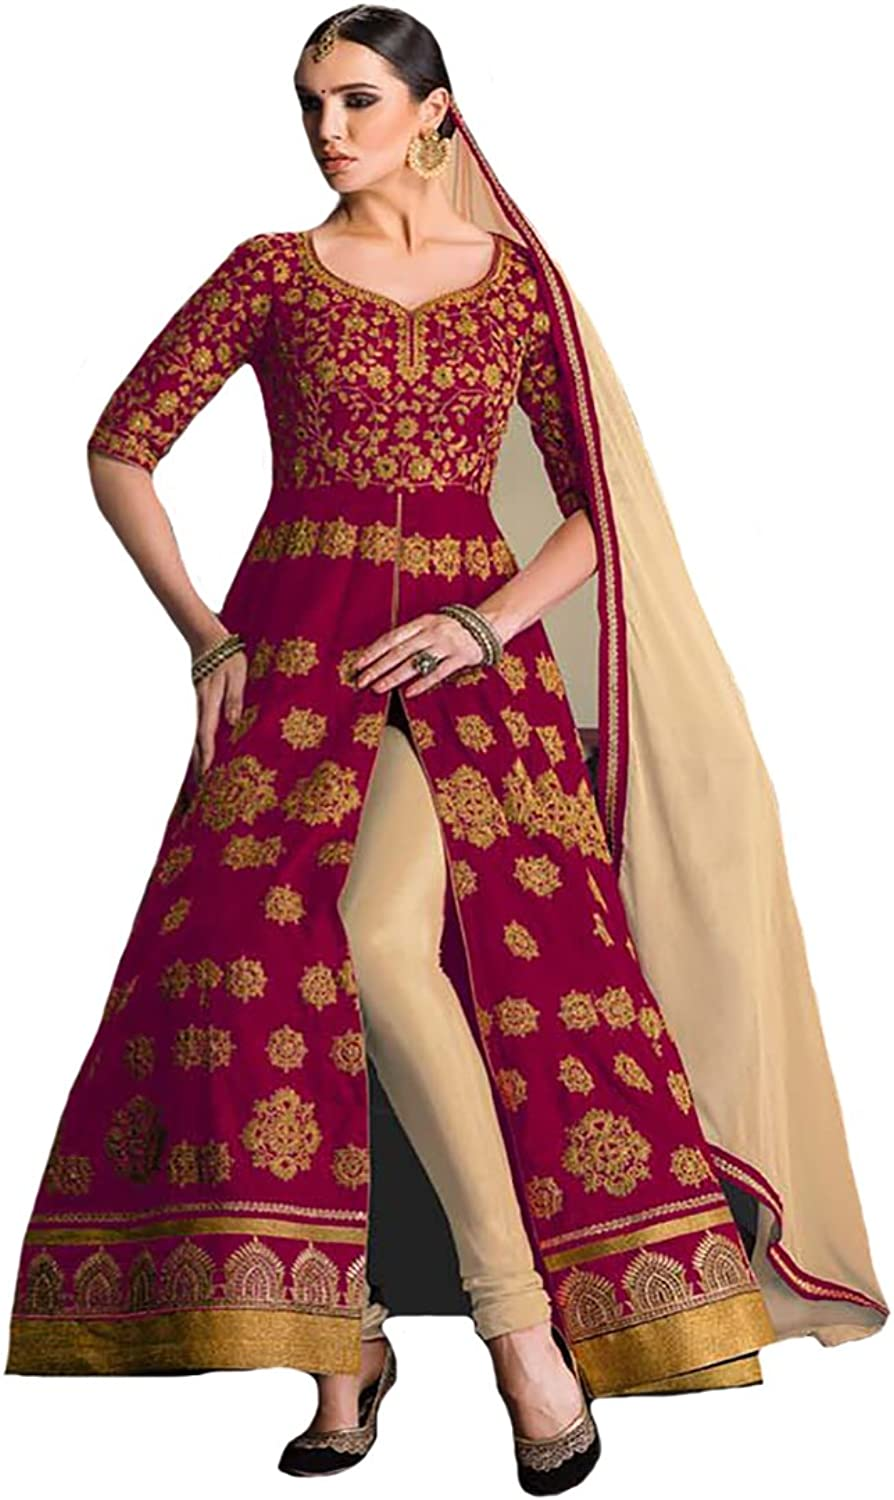 Best Ever Collection Anarkali Salwar Kameez suit Wedding Ceremony bridal 8634